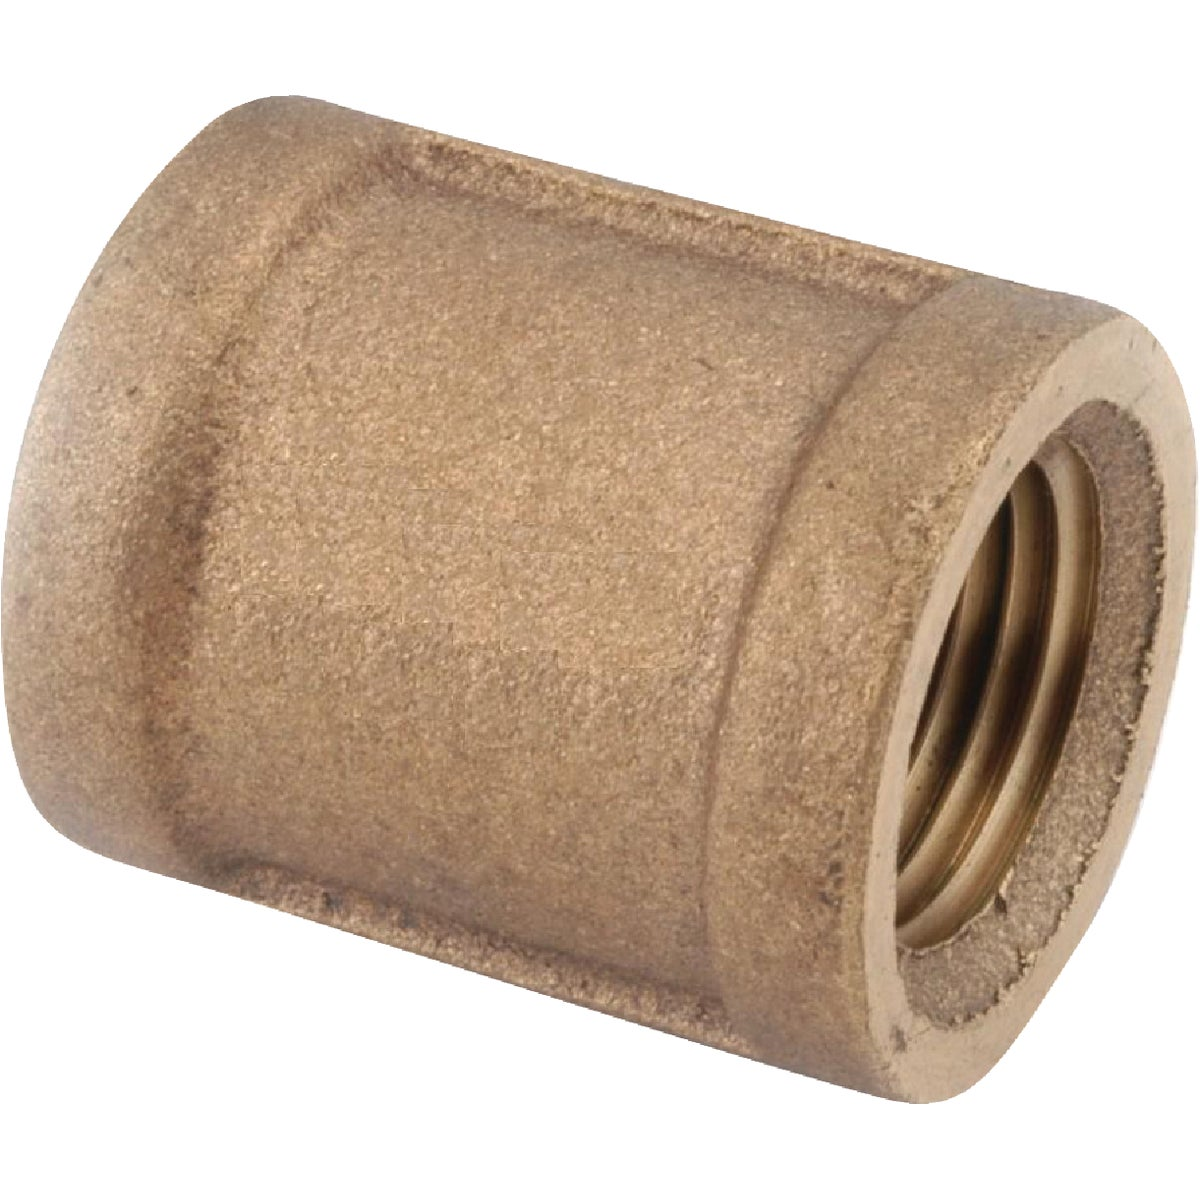 "1/2"" BRASS COUPLING - 738103-08 by Anderson Metals Corp"